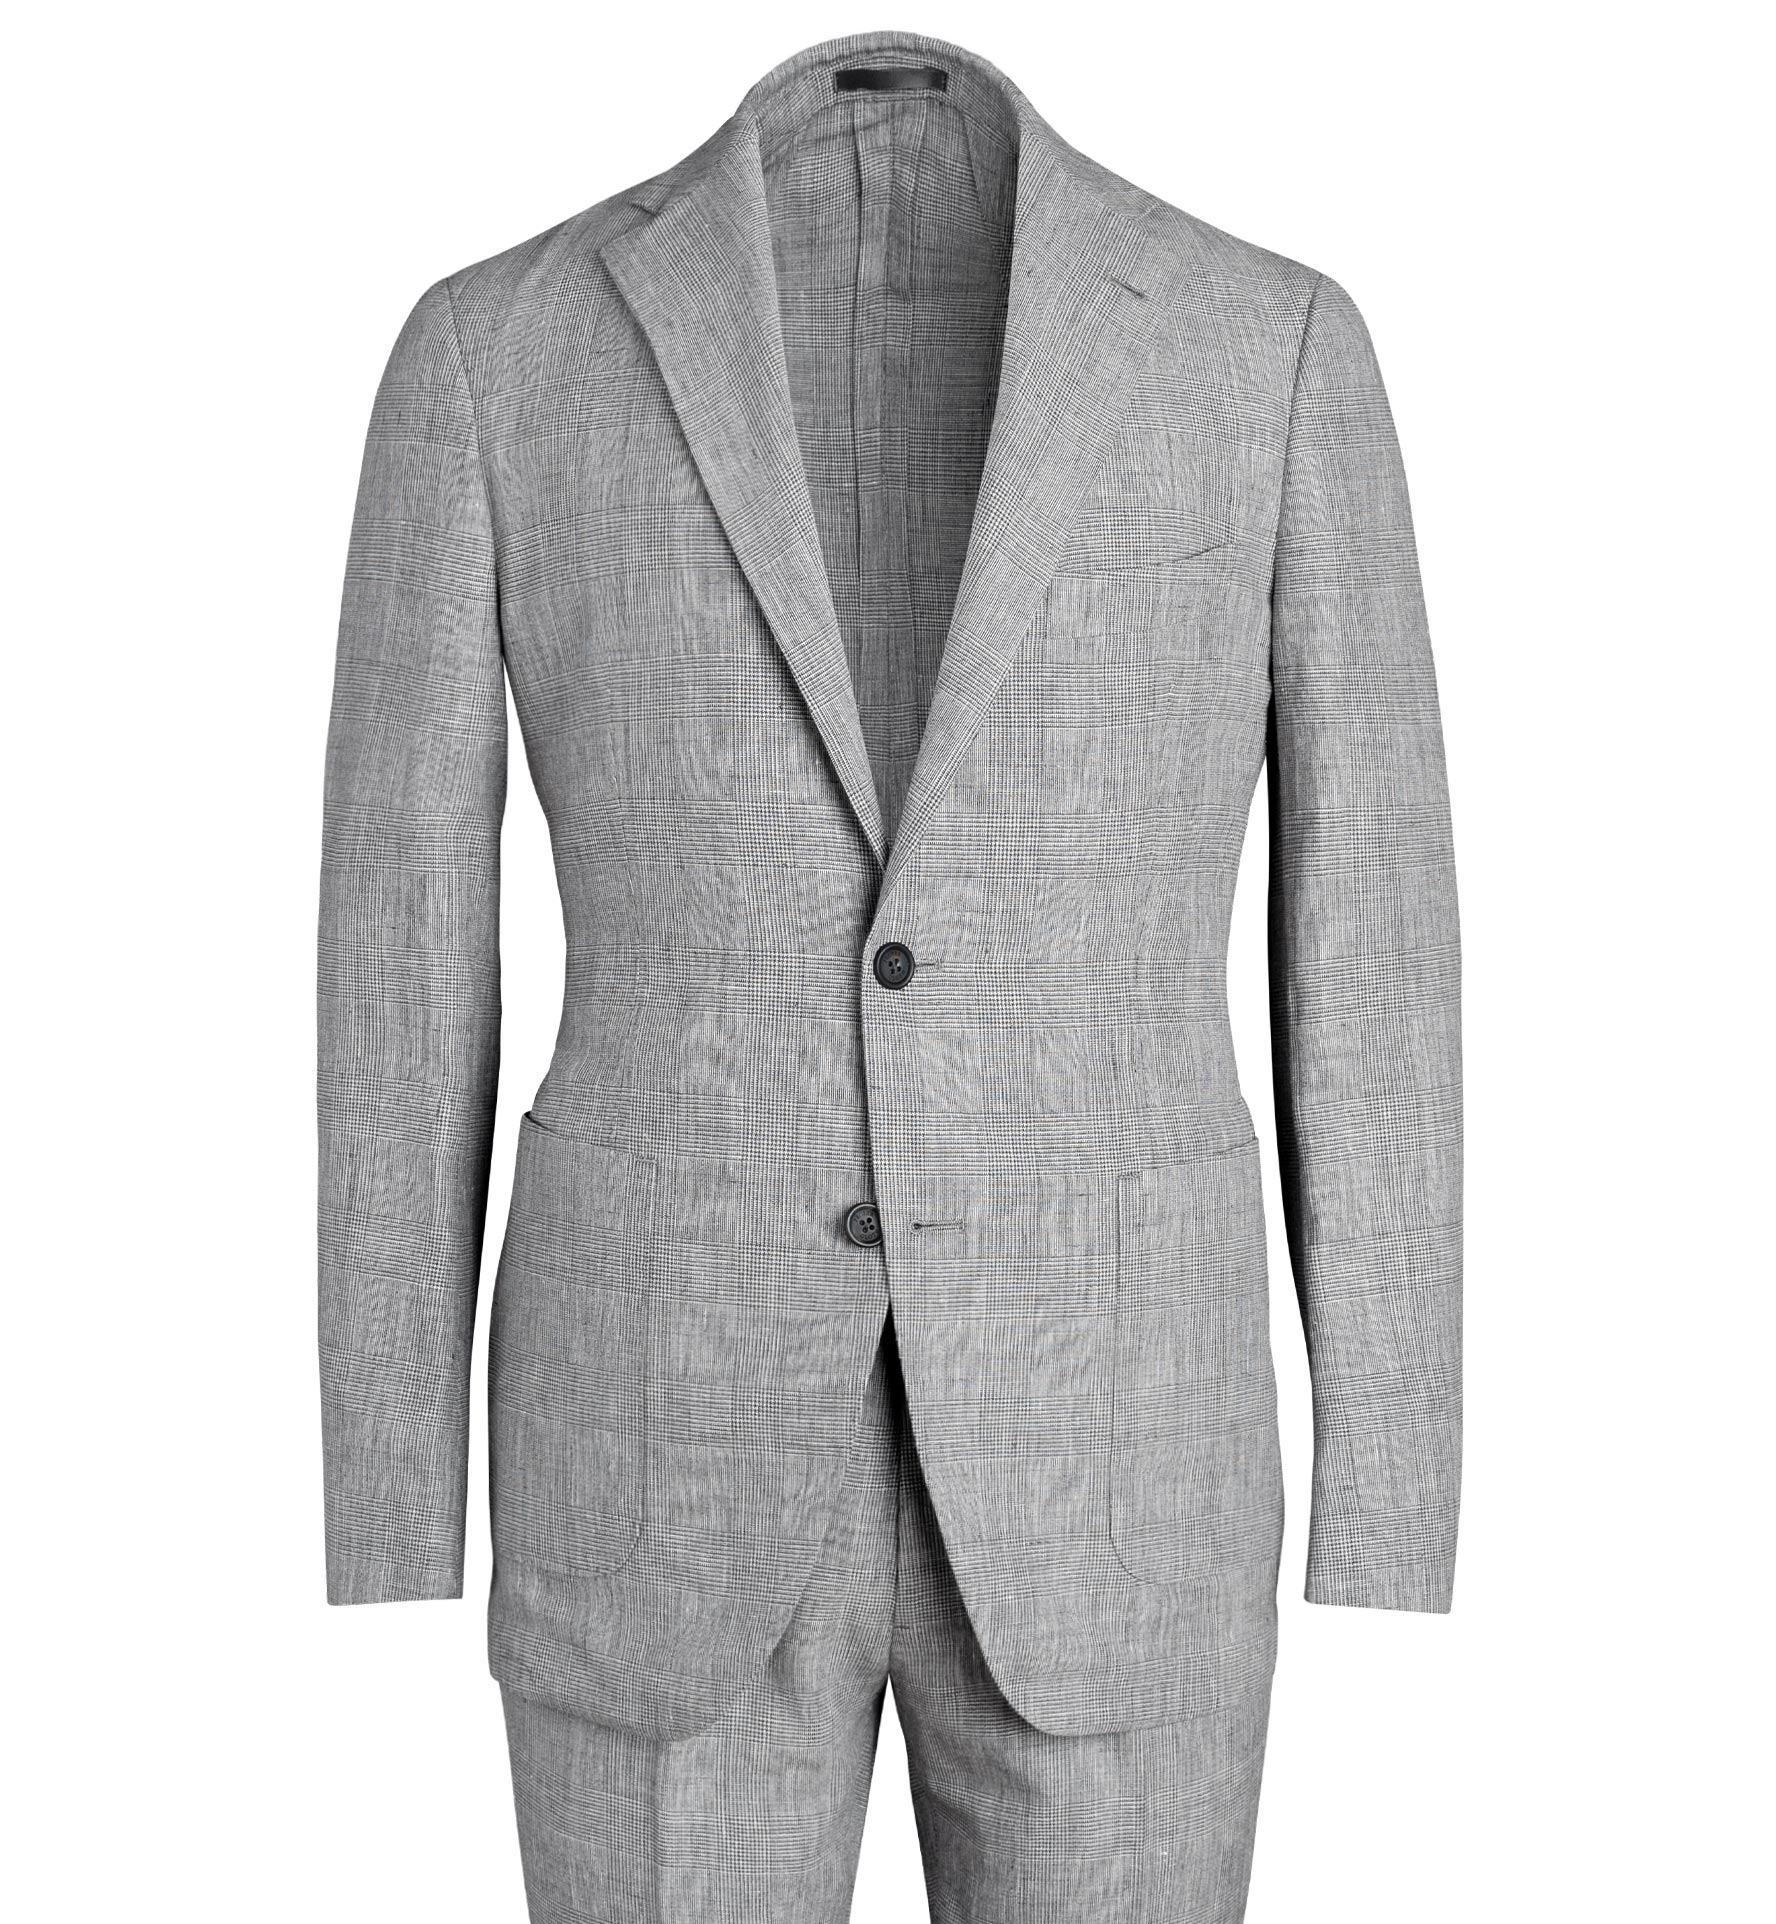 Zoom Image of Bedford Light Grey Glen Plaid Linen and Wool Suit